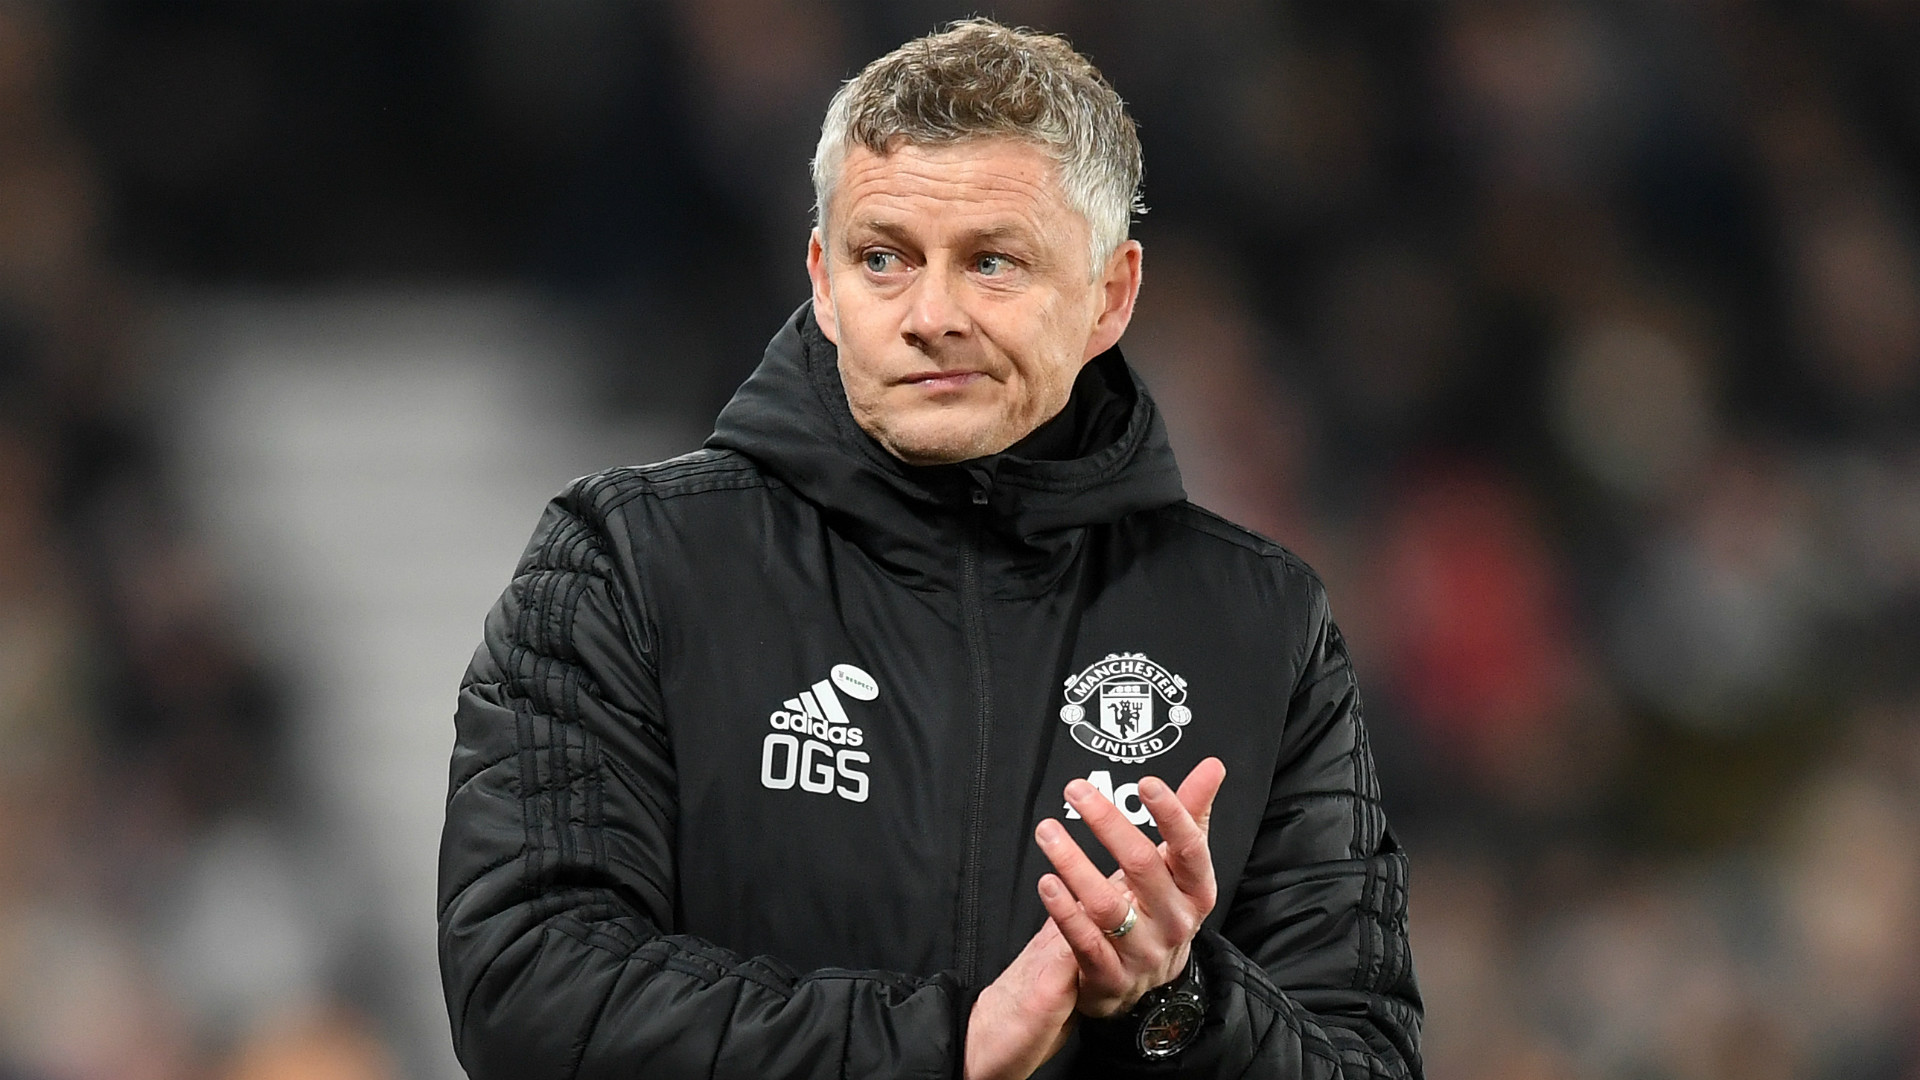 'They are the real heroes' - Man Utd boss Solskjaer salutes work of NHS during coronavirus crisis